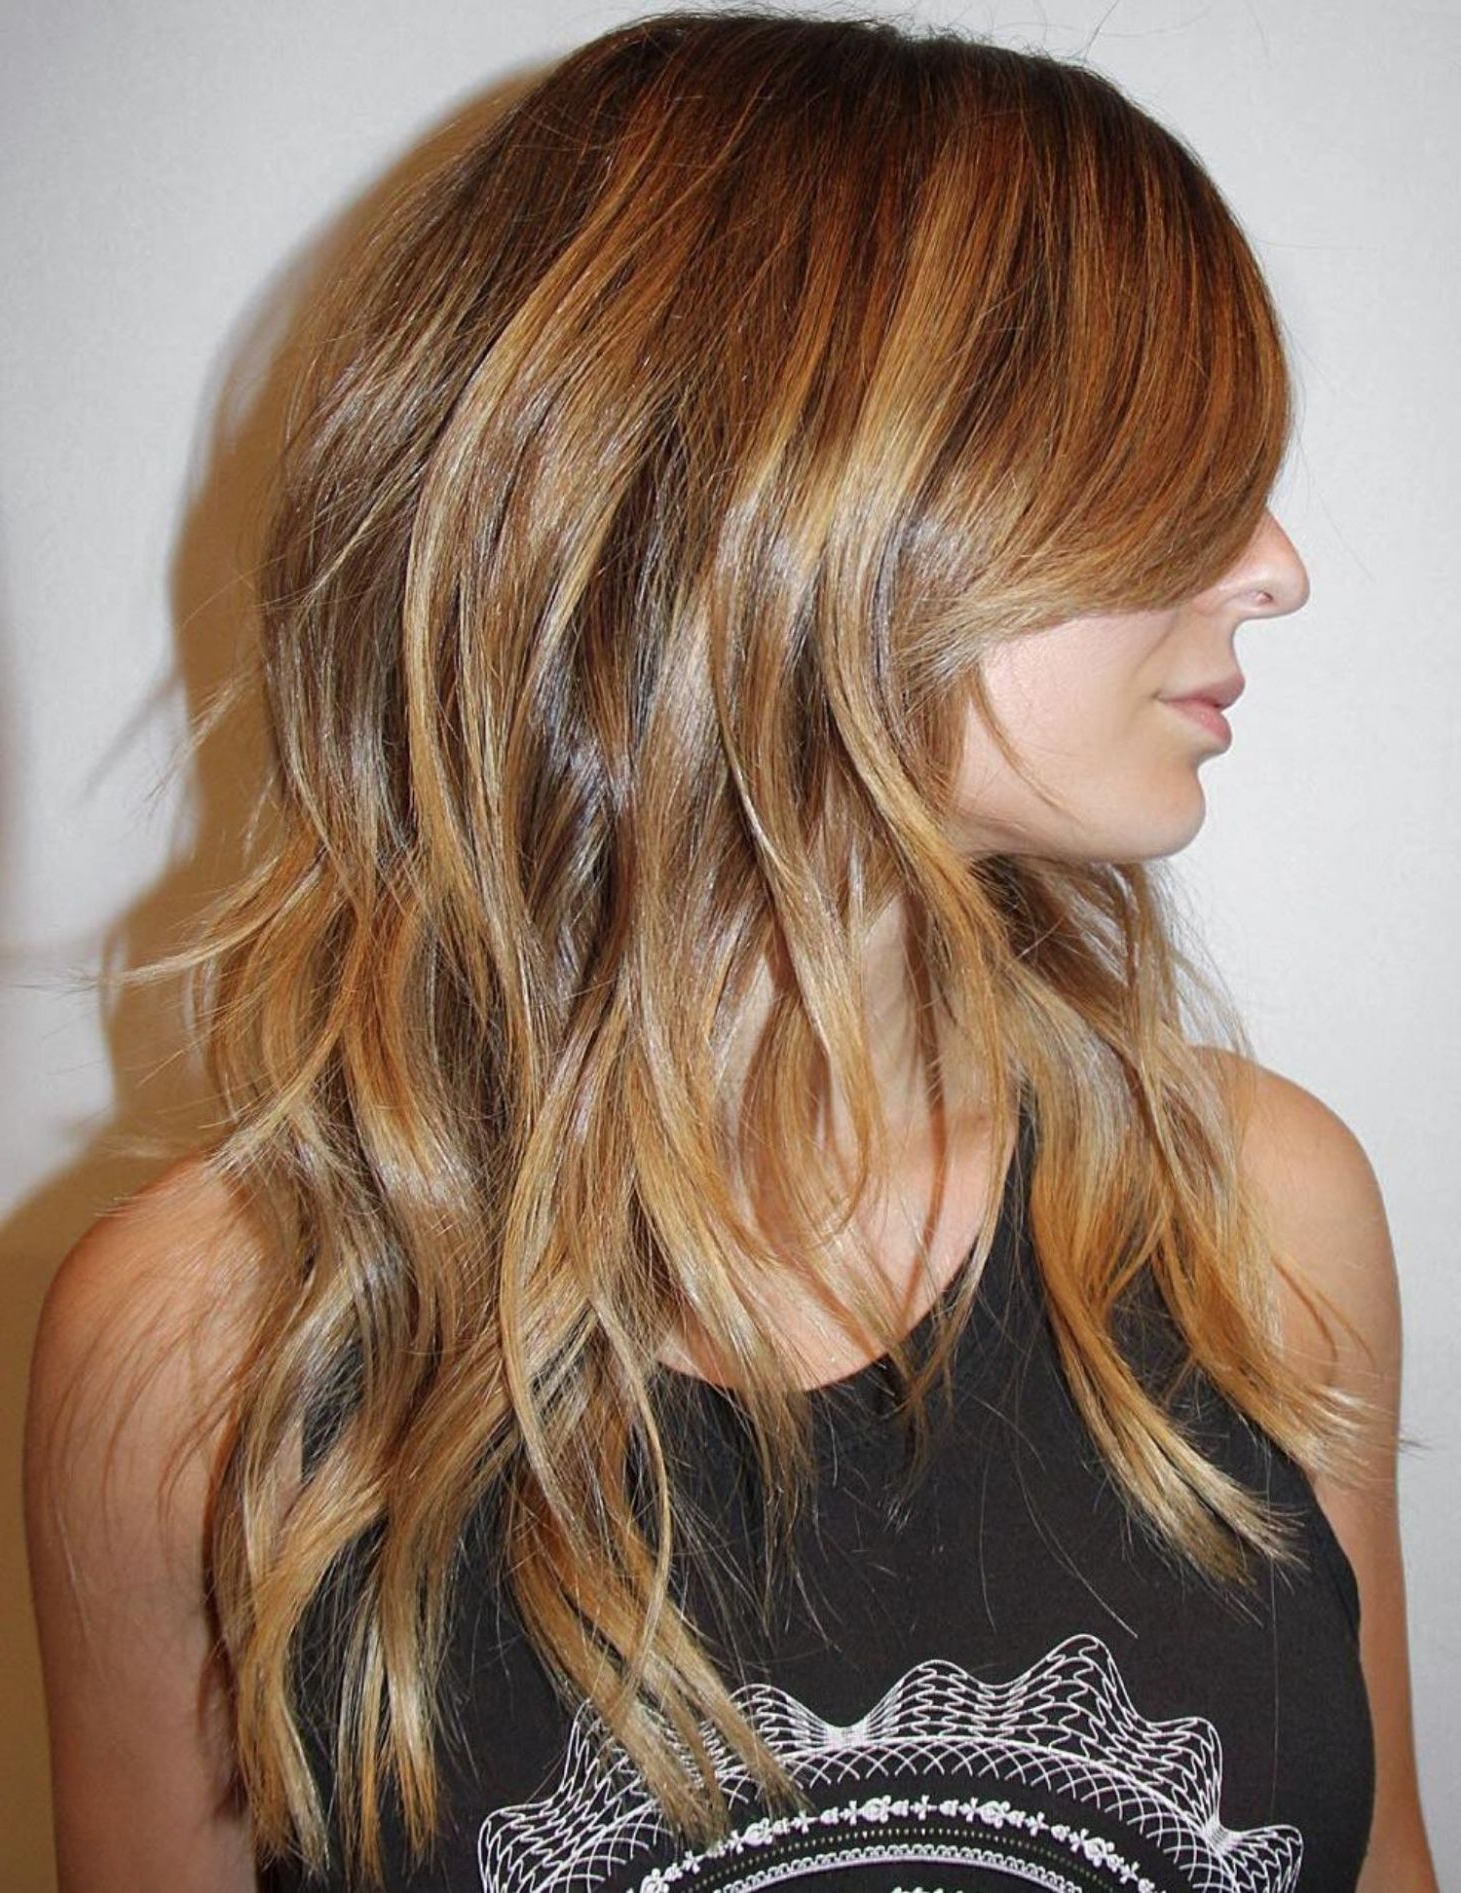 60 Lovely Long Shag Haircuts For Effortless Stylish Looks In With Regard To Latest Longer Tousled Caramel Blonde Shag Haircuts (View 6 of 20)